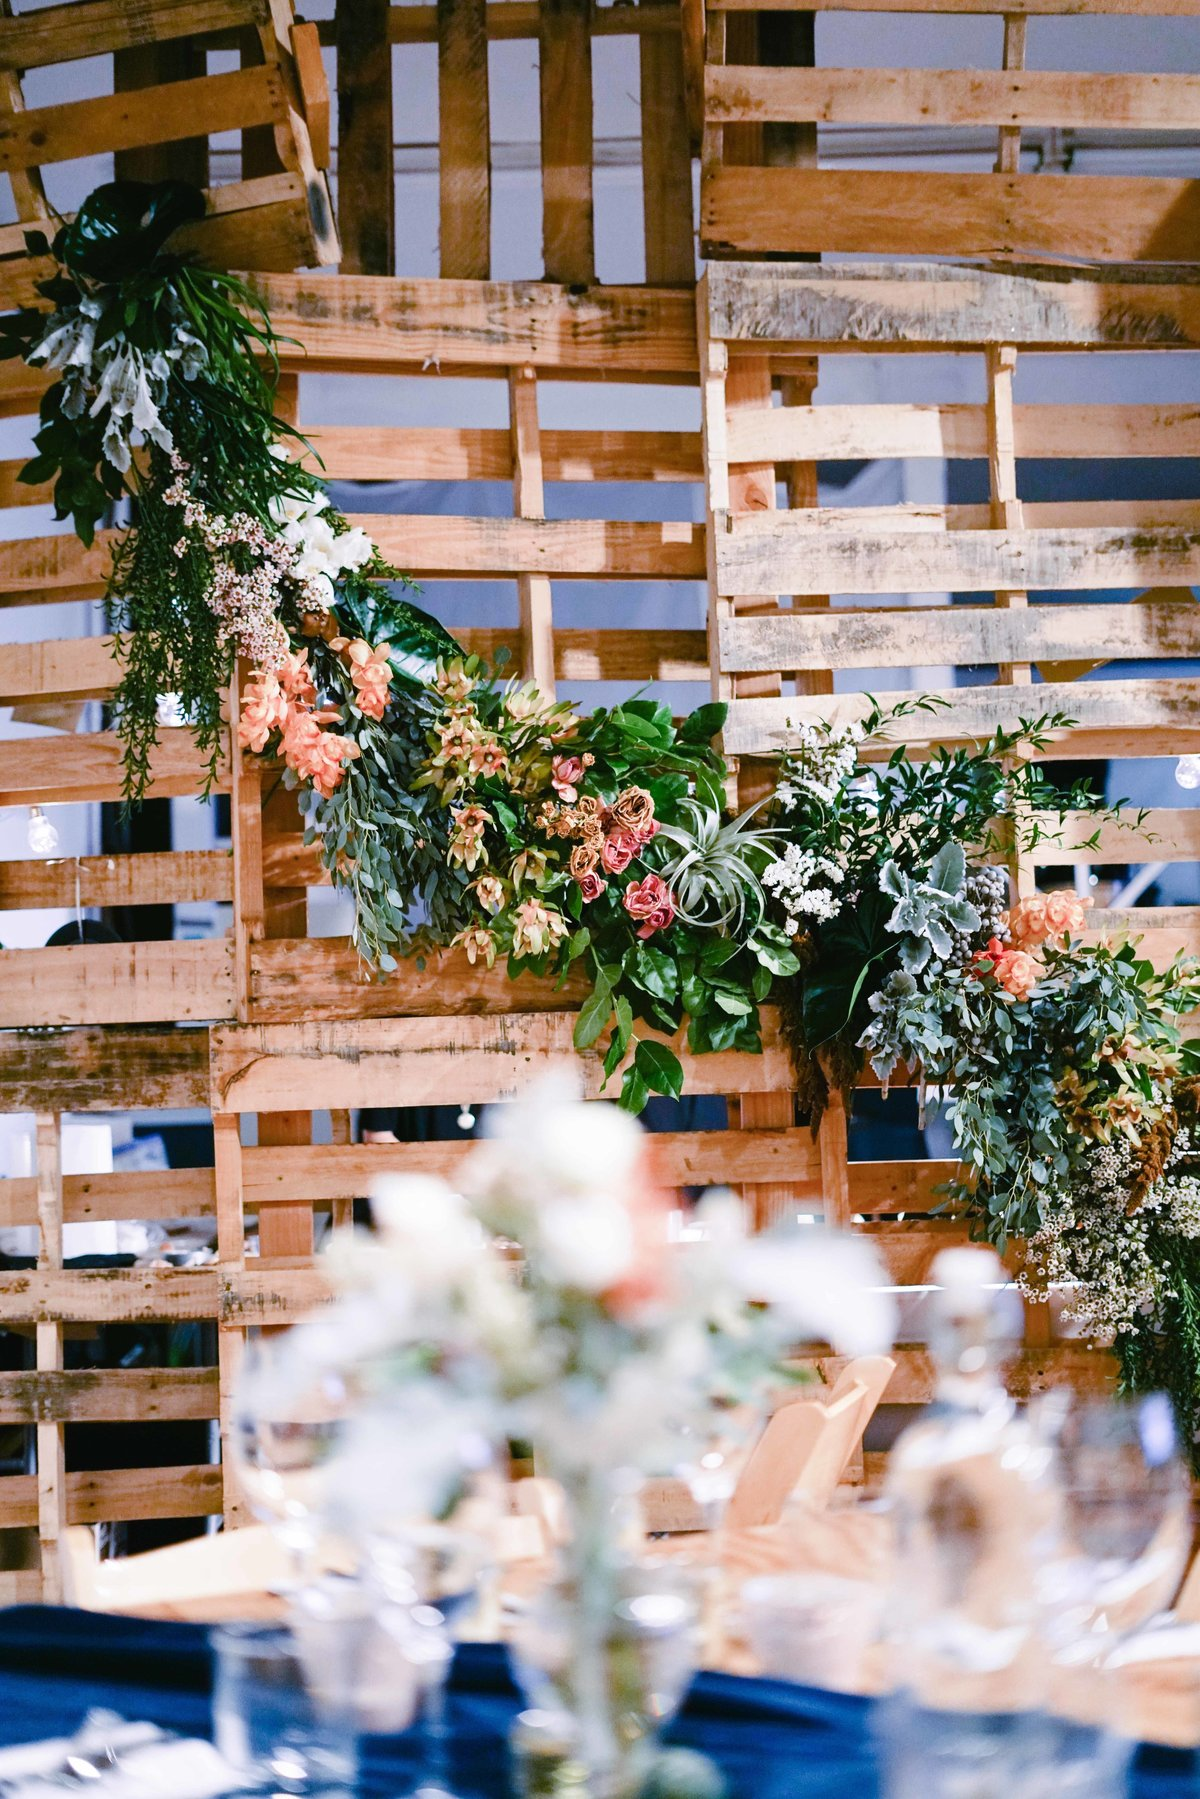 Dinner party backdrop using wooden pallets and long greenery garland with flowers